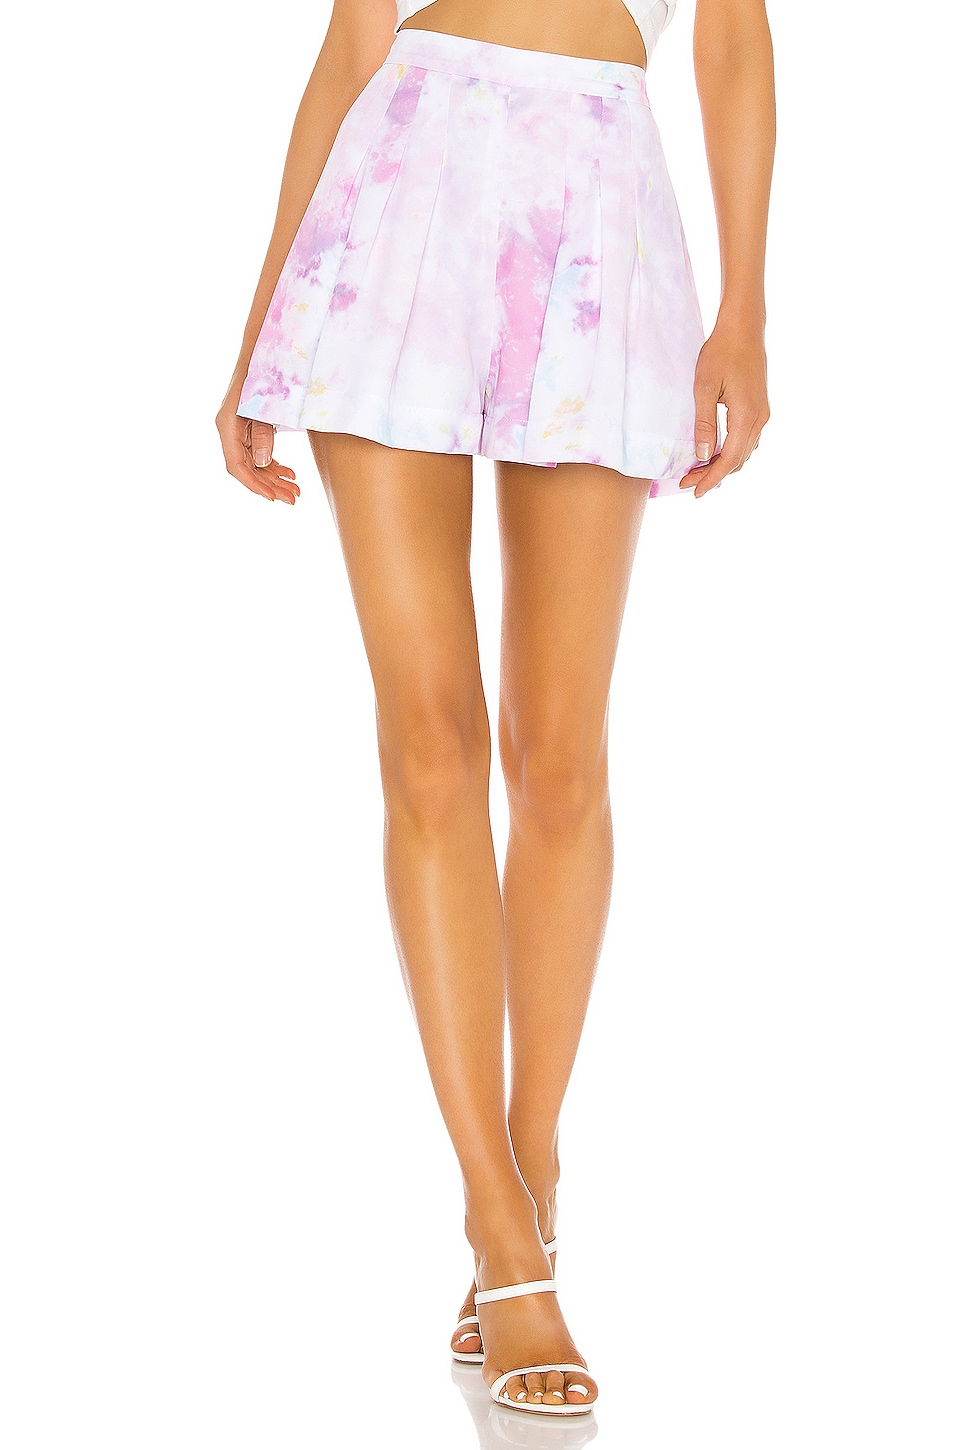 Endless Summer Zoey Short in Cotton Candy Tie Dye